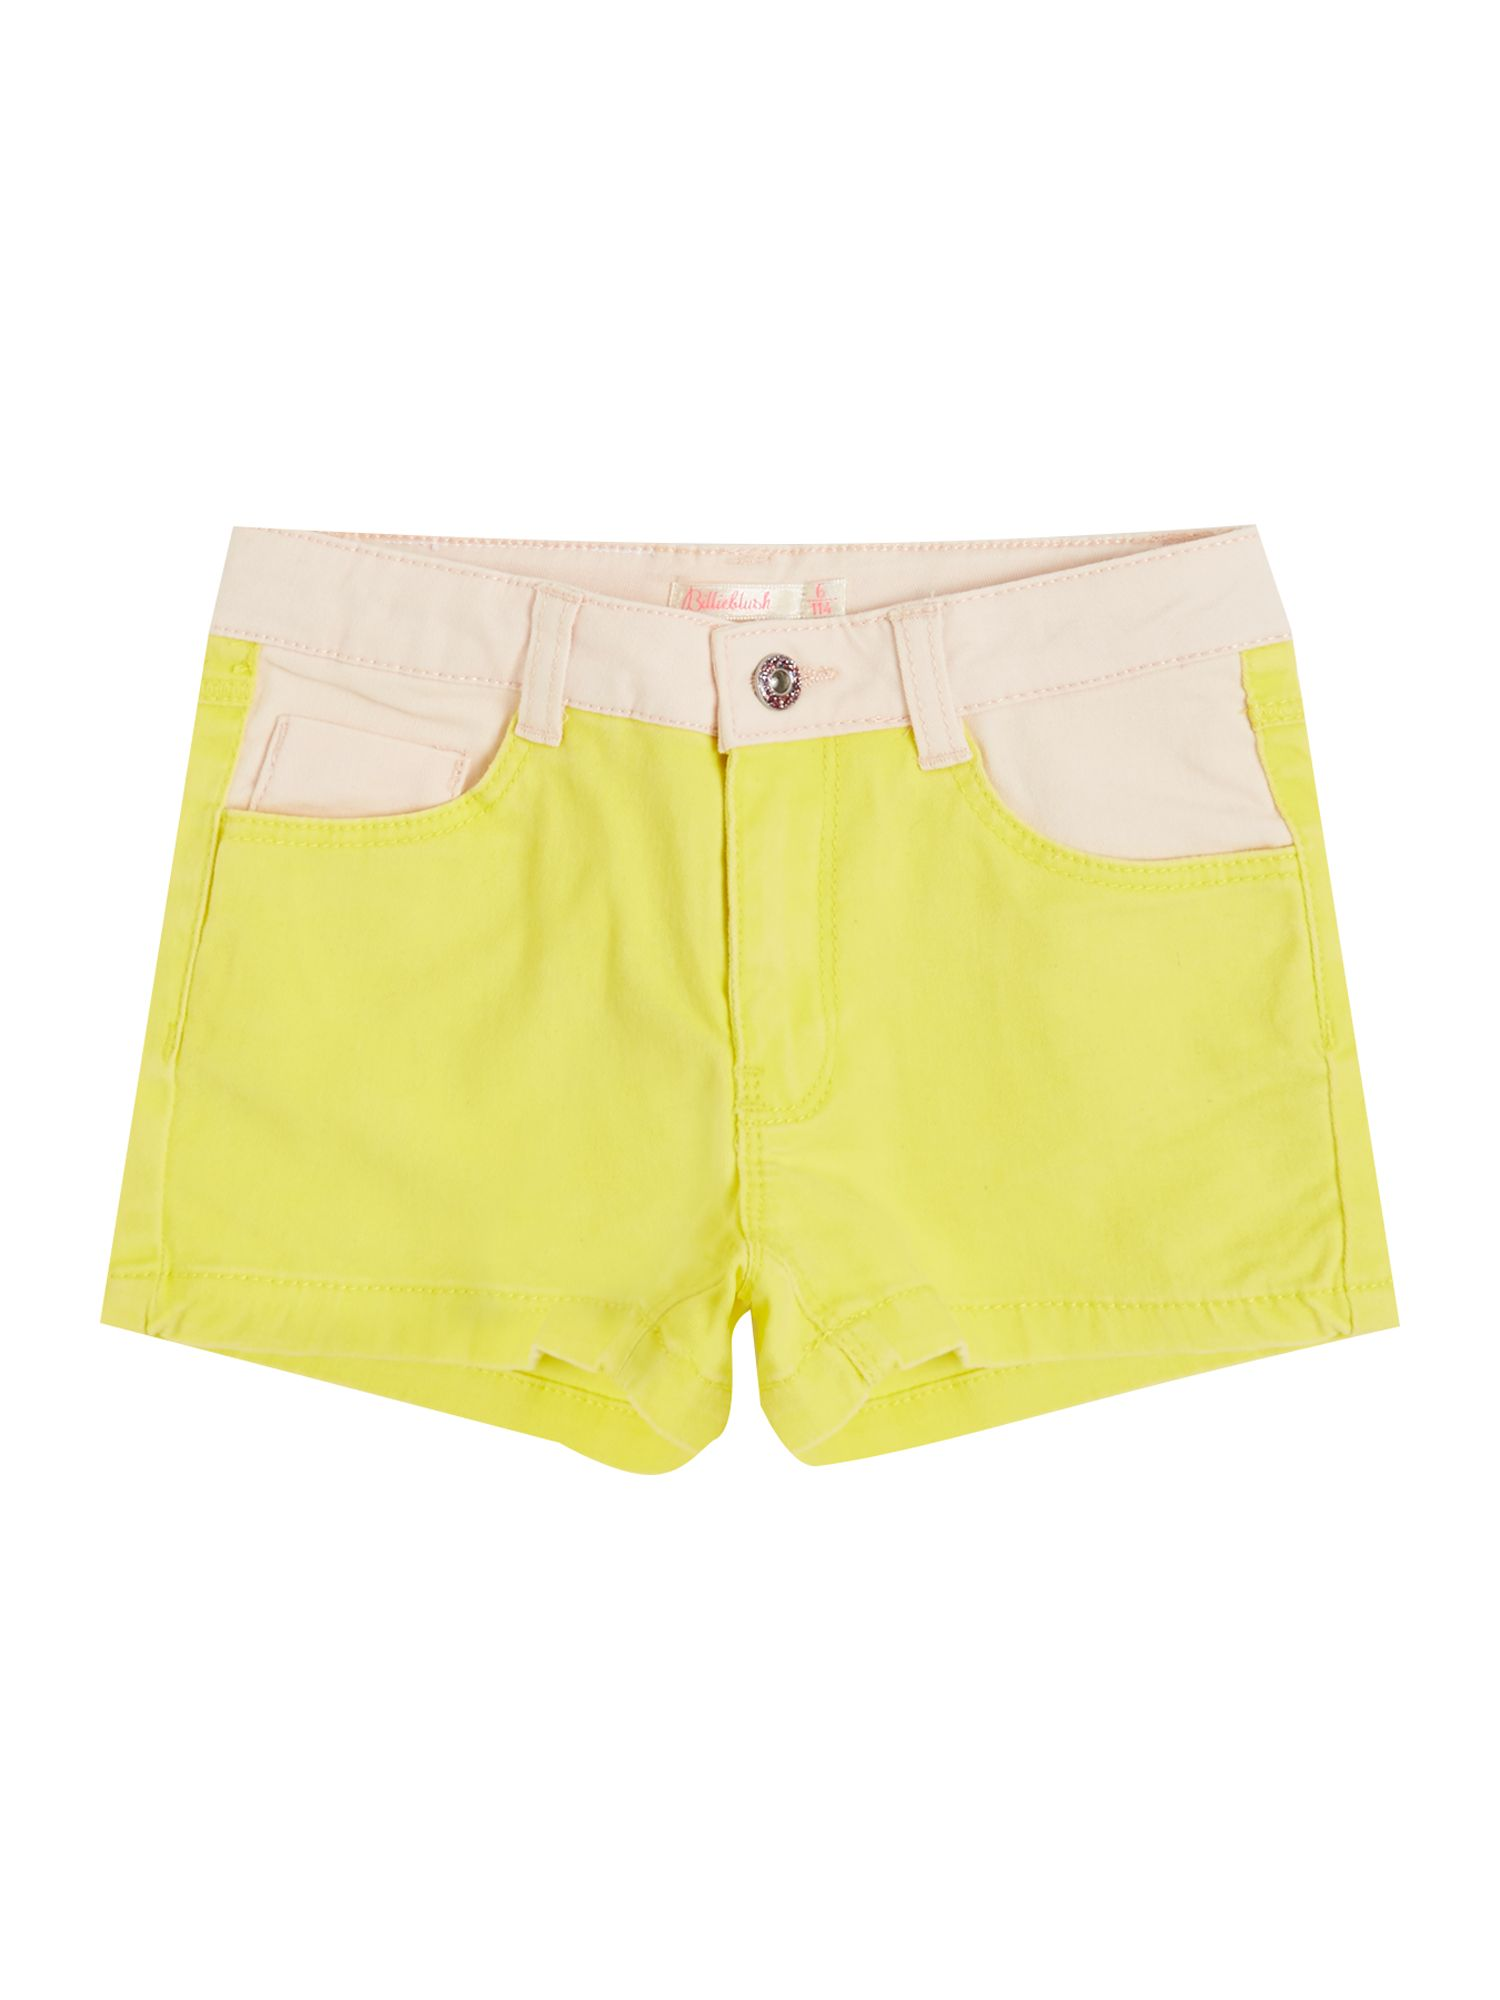 Billieblush Billieblush Girls Shorts, Yellow